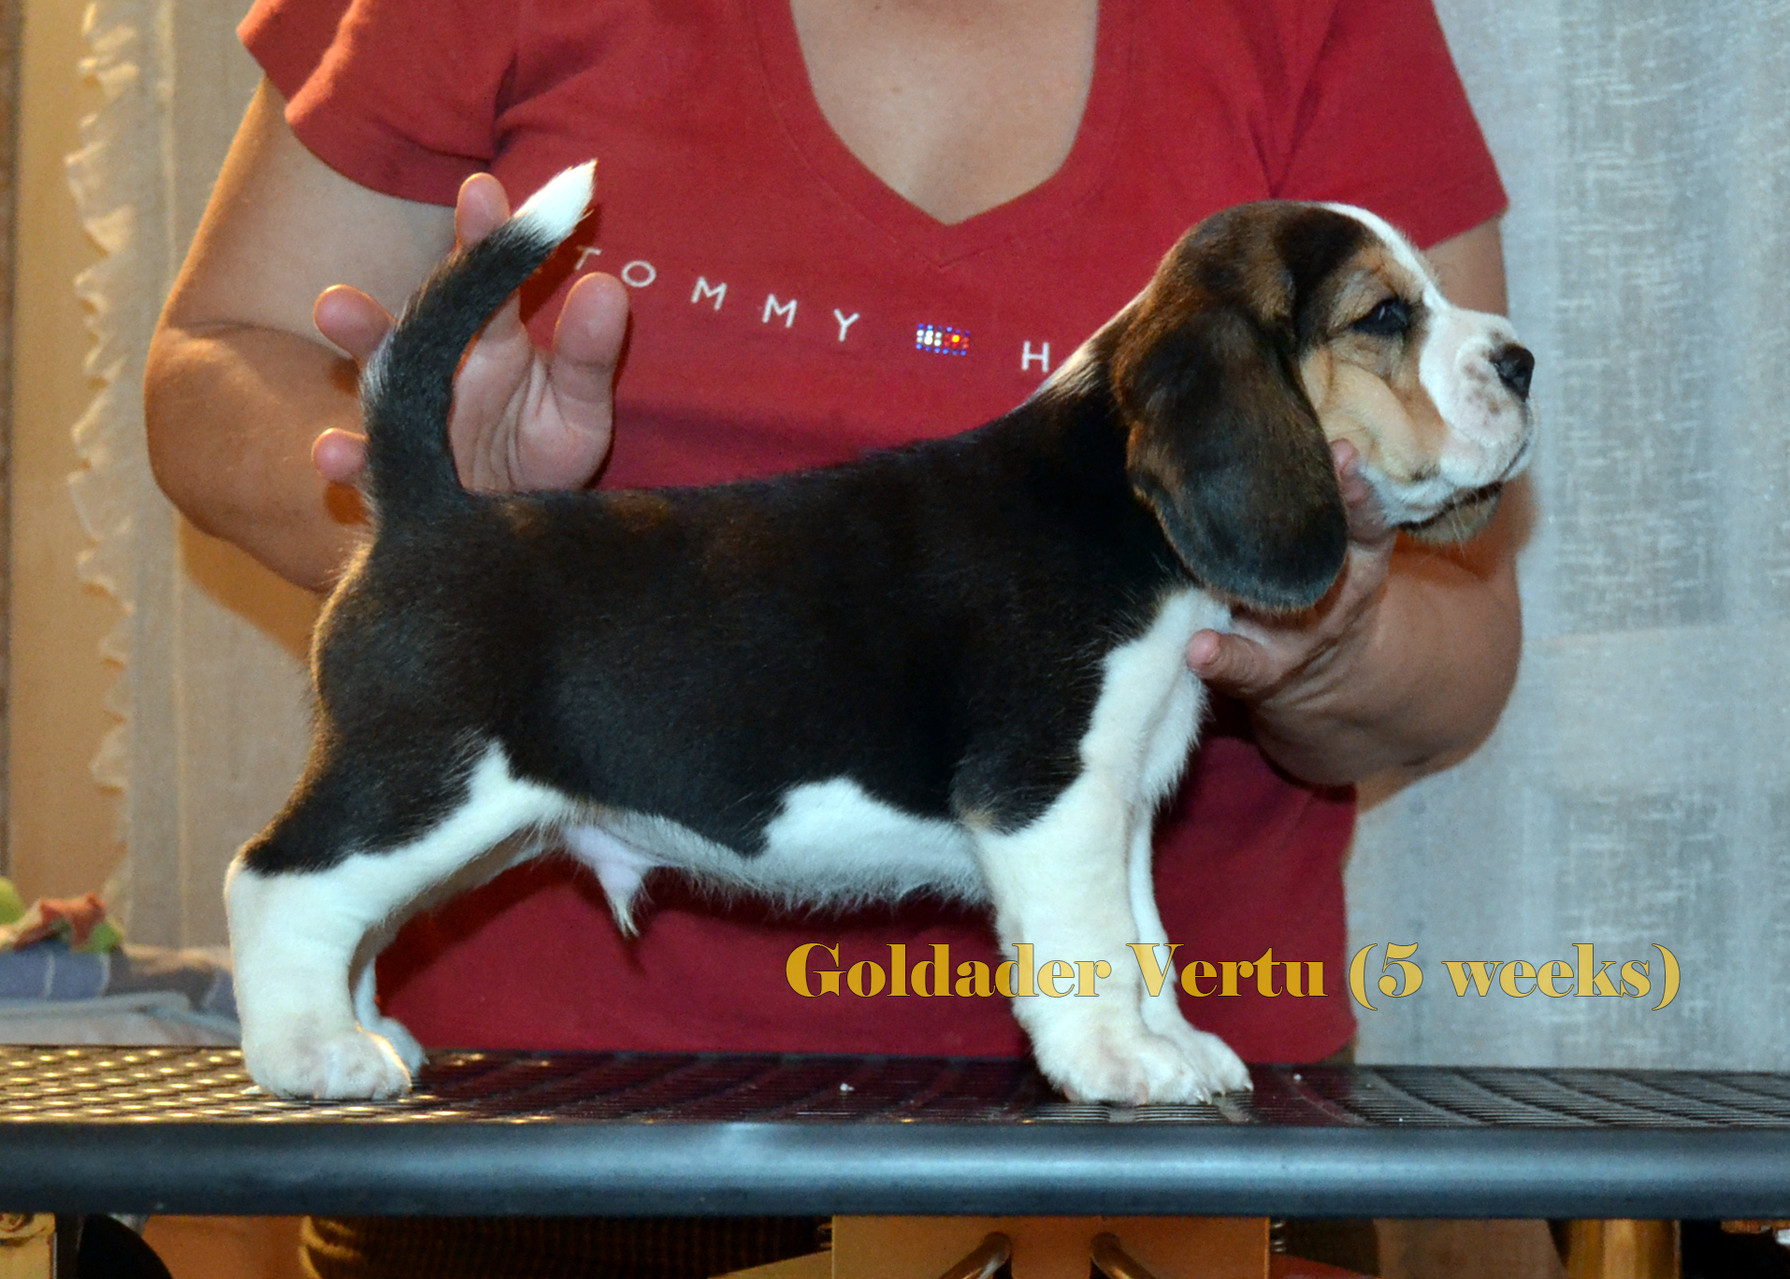 Goldader Vertu, 5weeks old,bigl